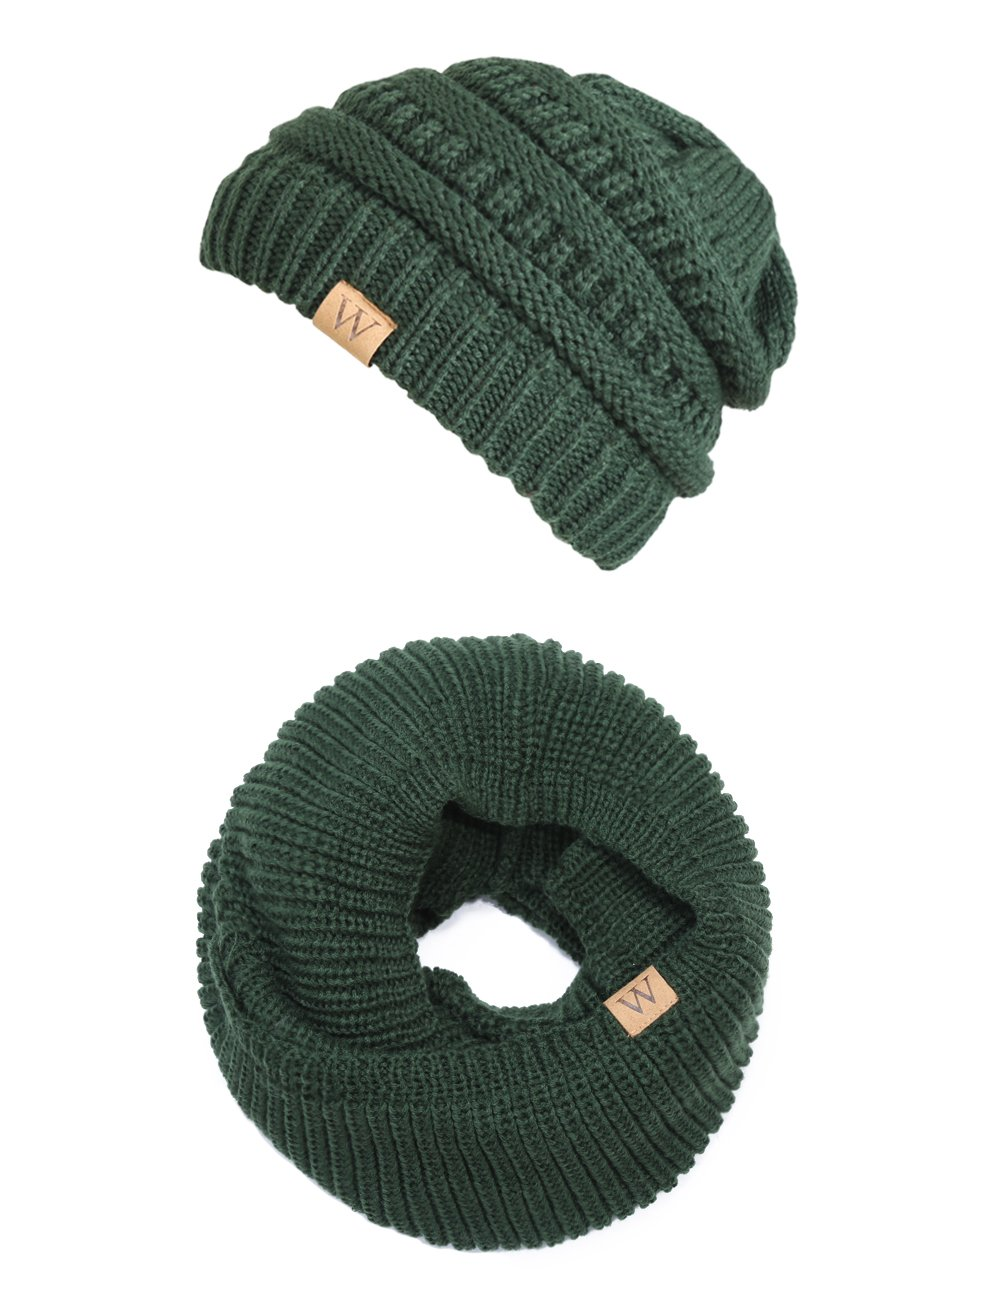 EVRFELAN Winter Warm Knitted Infinity Shamrock Scarf and Beanie Hat Set (Green)